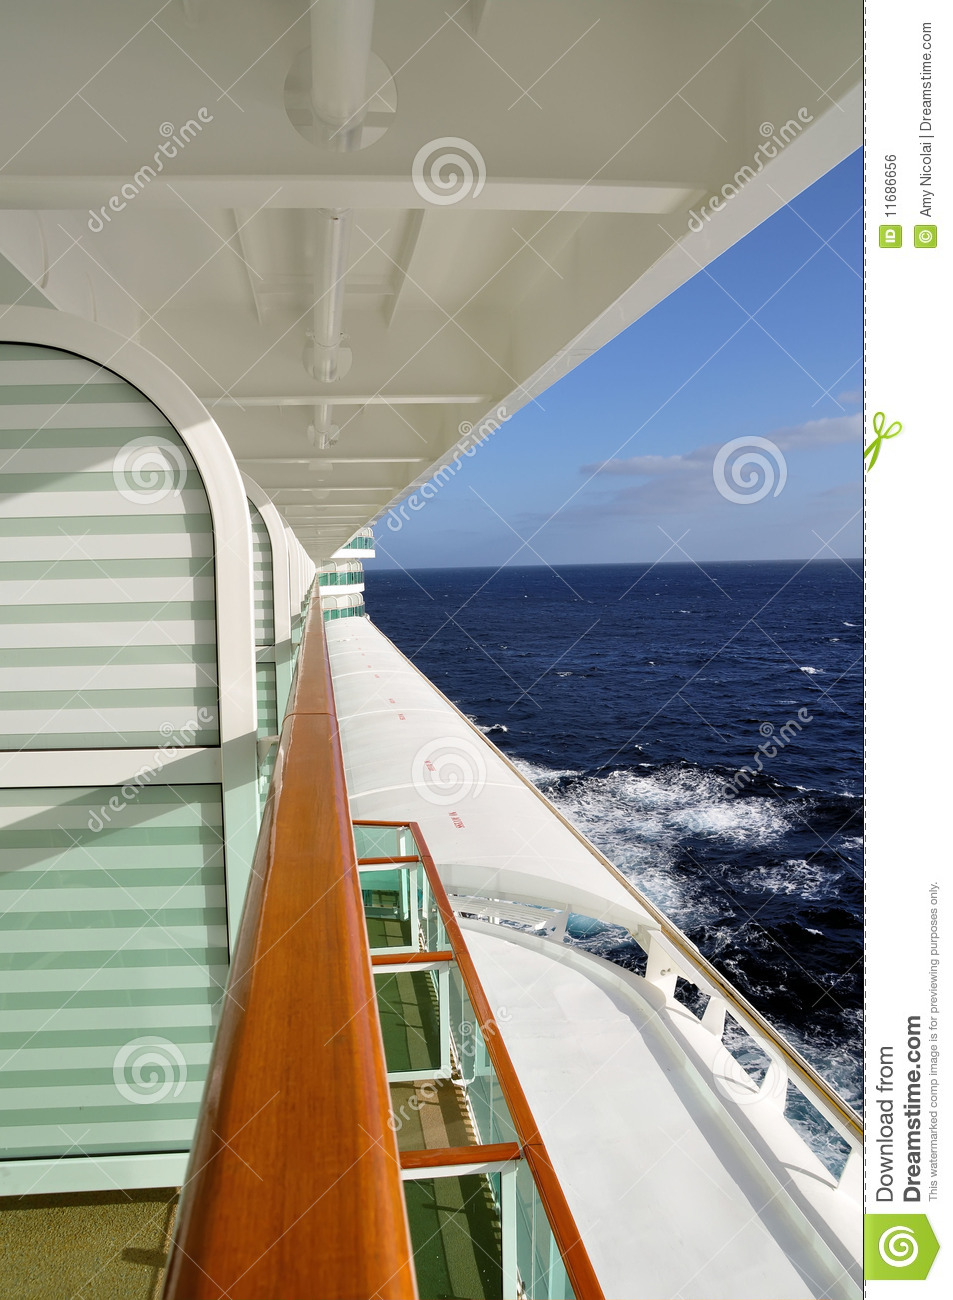 Cruise ship view from the balcony royalty free stock image for Balcony in cruise ship